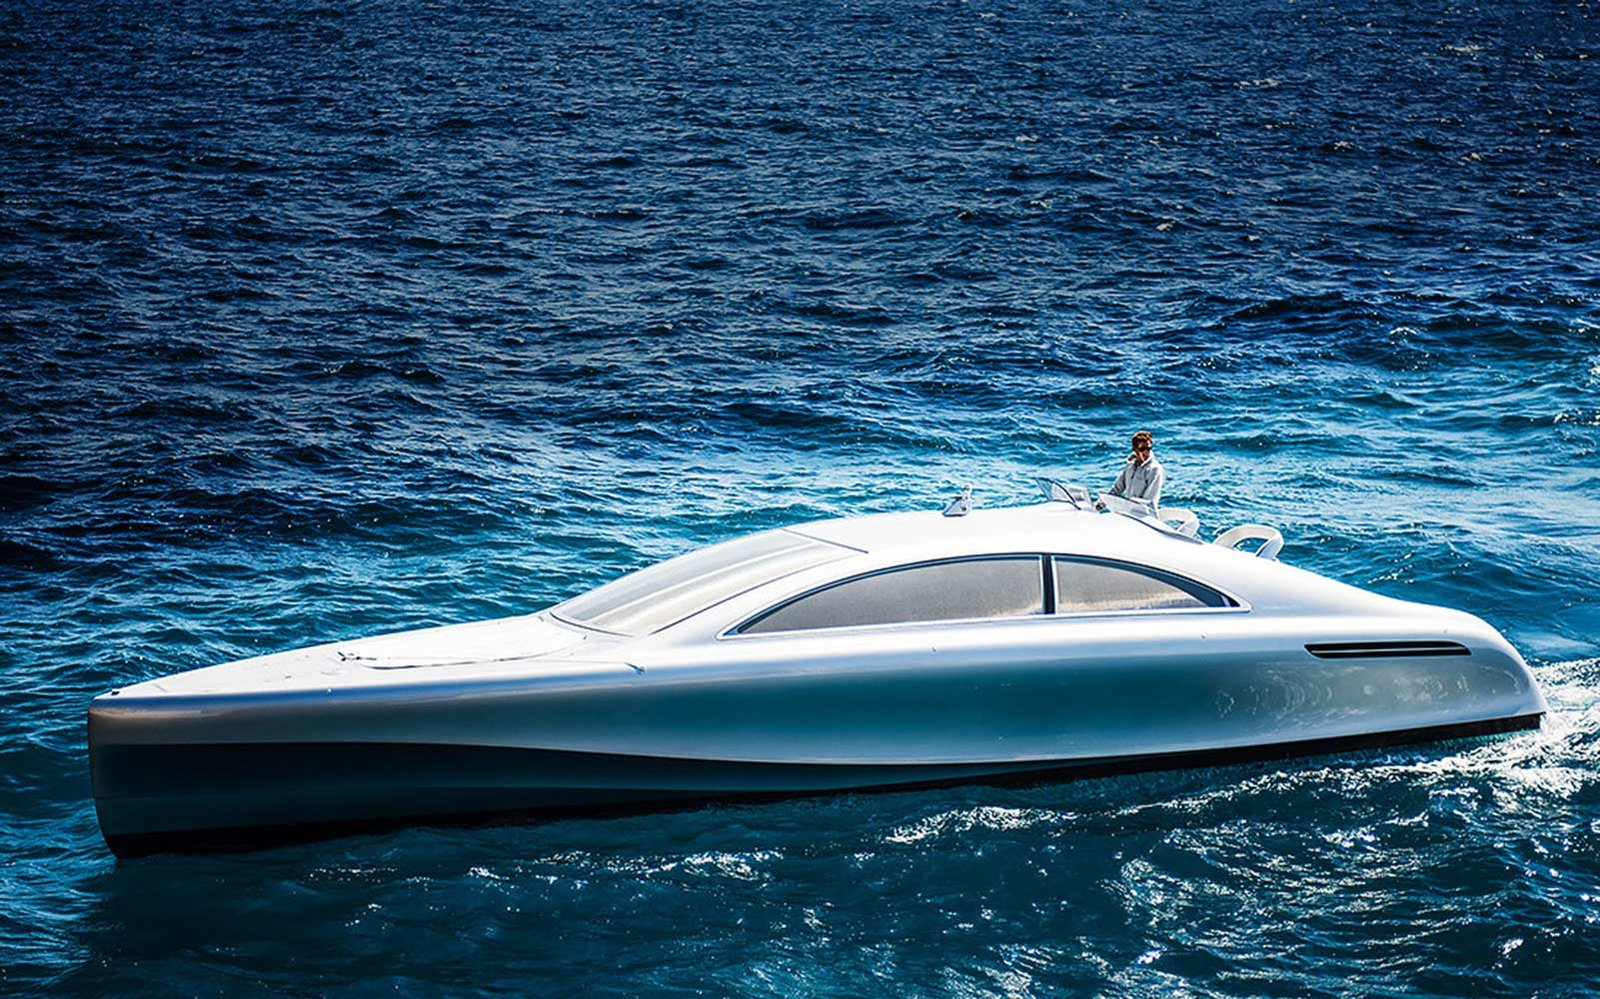 Mercedes created a luxurious $1.7 million yacht that only 10 people in the world will be able to buy